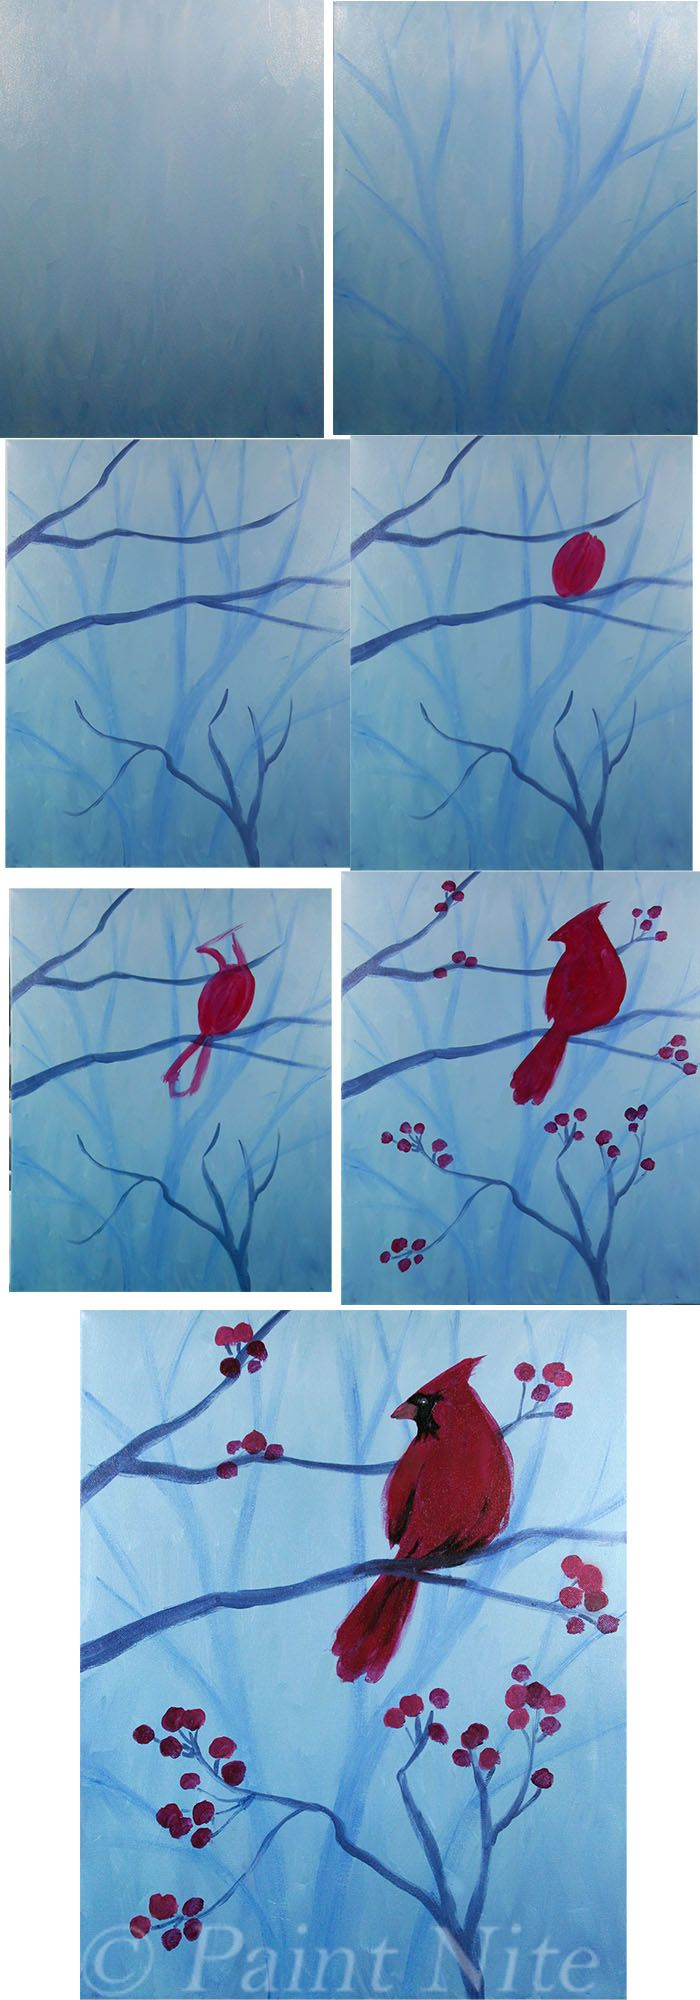 Winter Cardinal Process: Colors: Ultramarine Blue, White, Red, black.